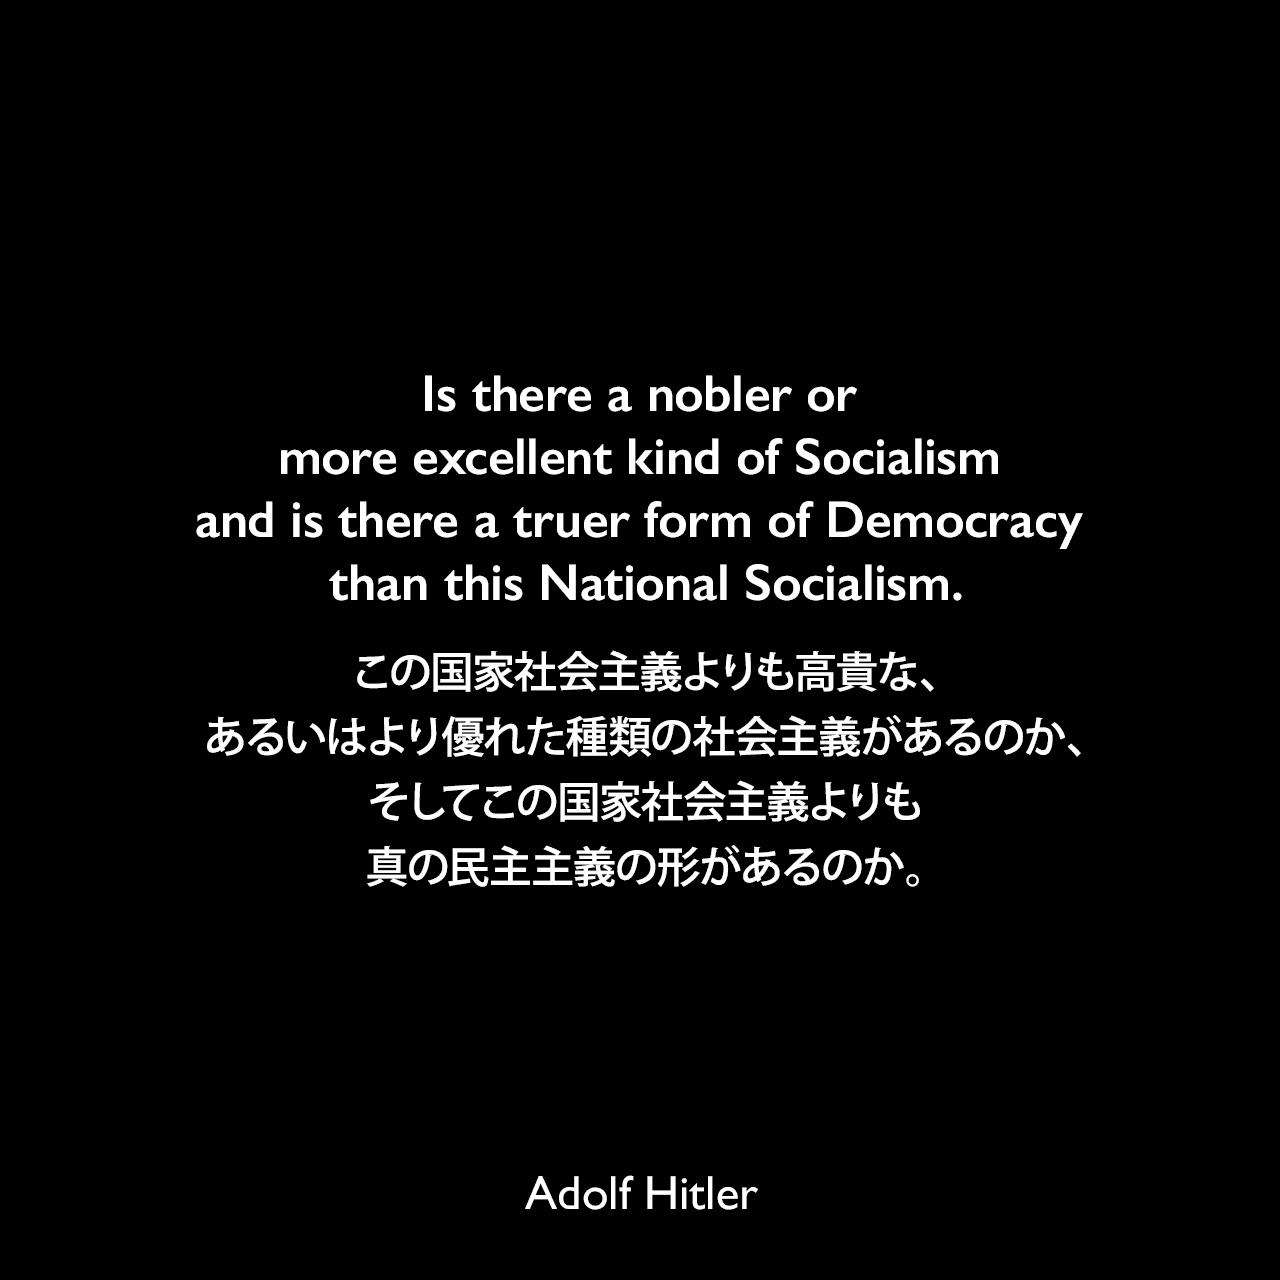 Is there a nobler or more excellent kind of Socialism and is there a truer form of Democracy than this National Socialism.この国家社会主義よりも高貴な、あるいはより優れた種類の社会主義があるのか、そしてこの国家社会主義よりも真の民主主義の形があるのか。- 1937年1月30日アドルフ・ヒトラーのドイツ帝国議会での演説「国家社会主義と世界関係について」よりAdolf Hitler